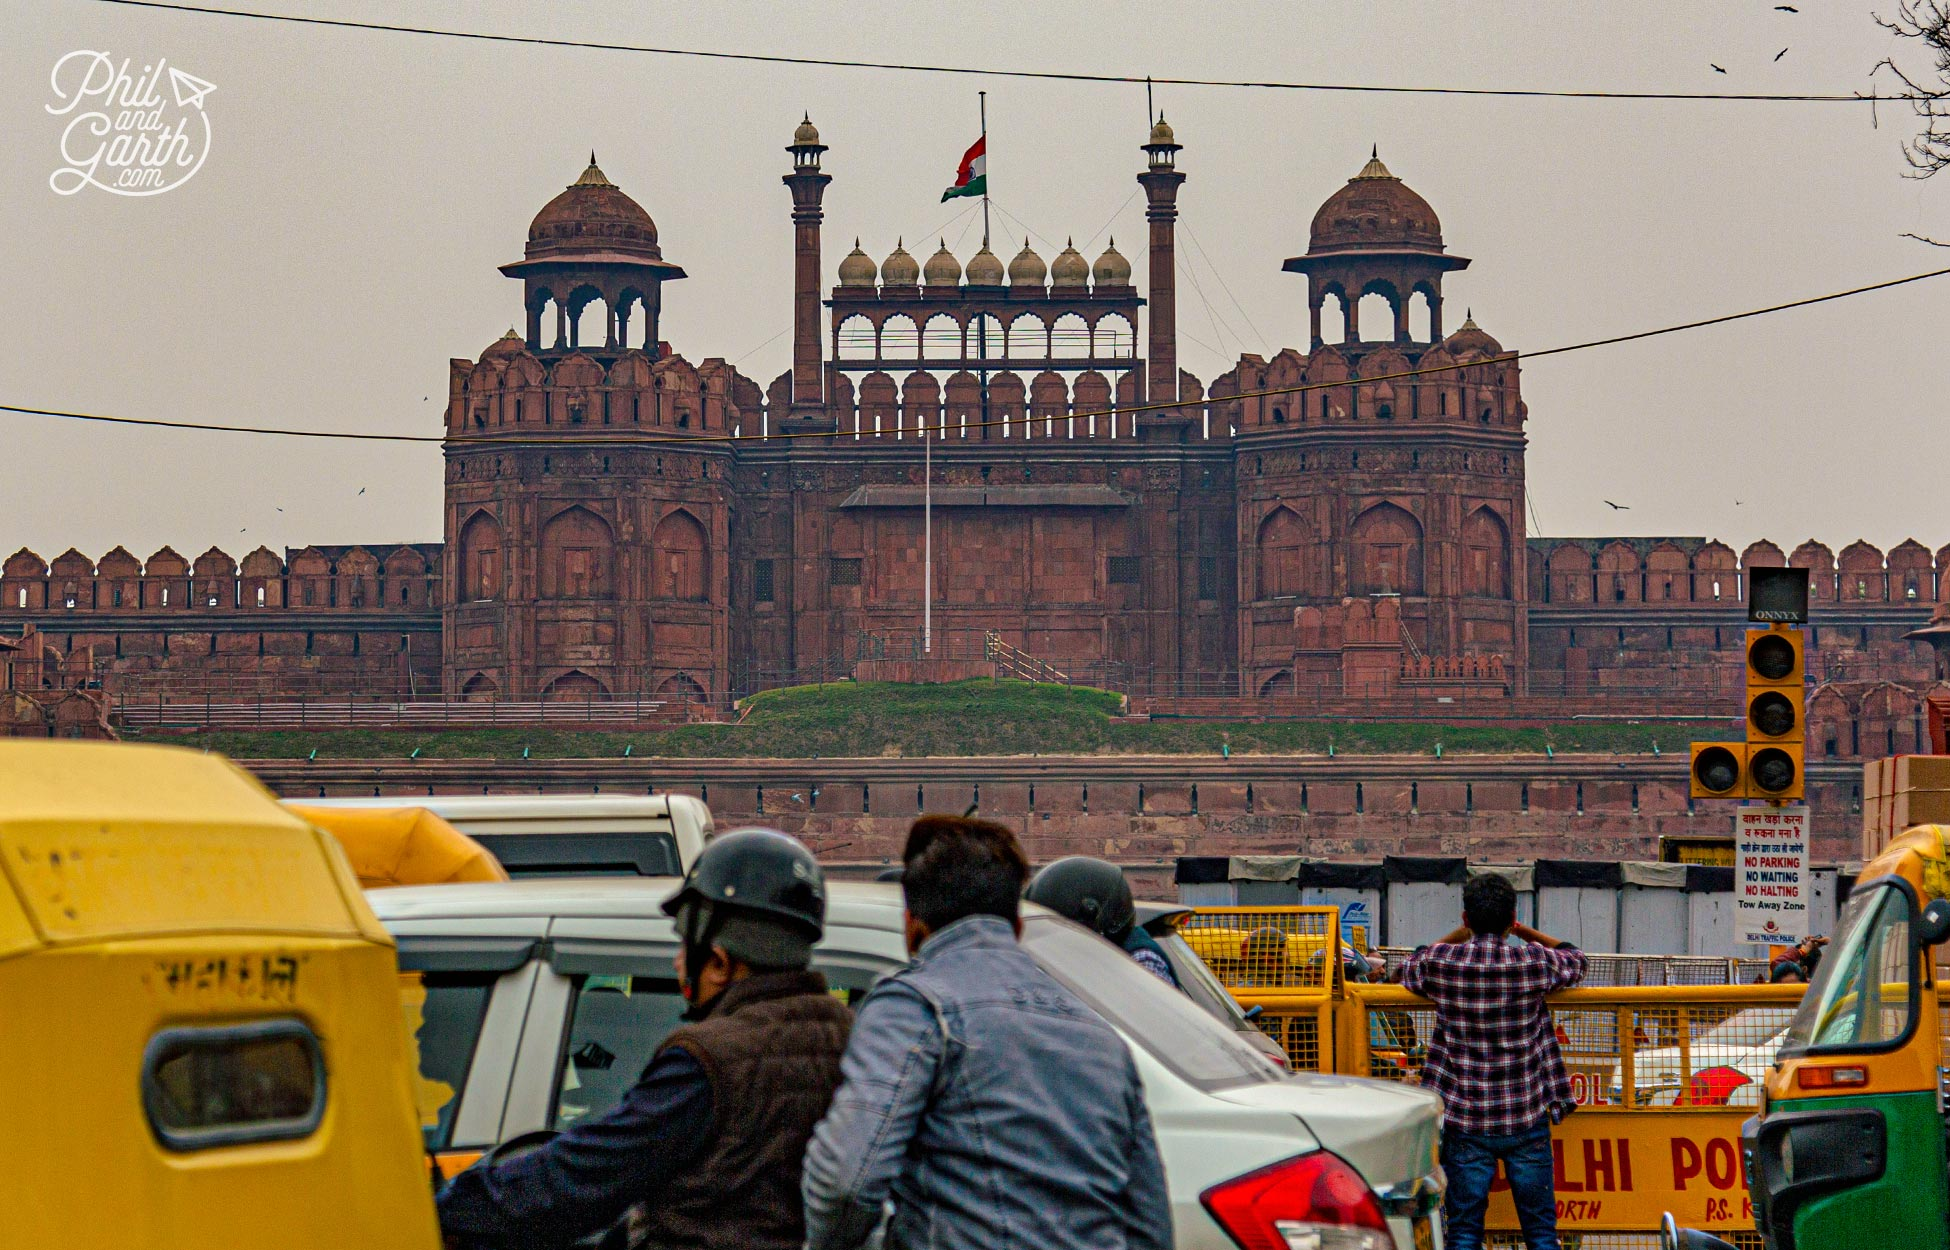 The historic Red Fort at the heart of Old Delhi